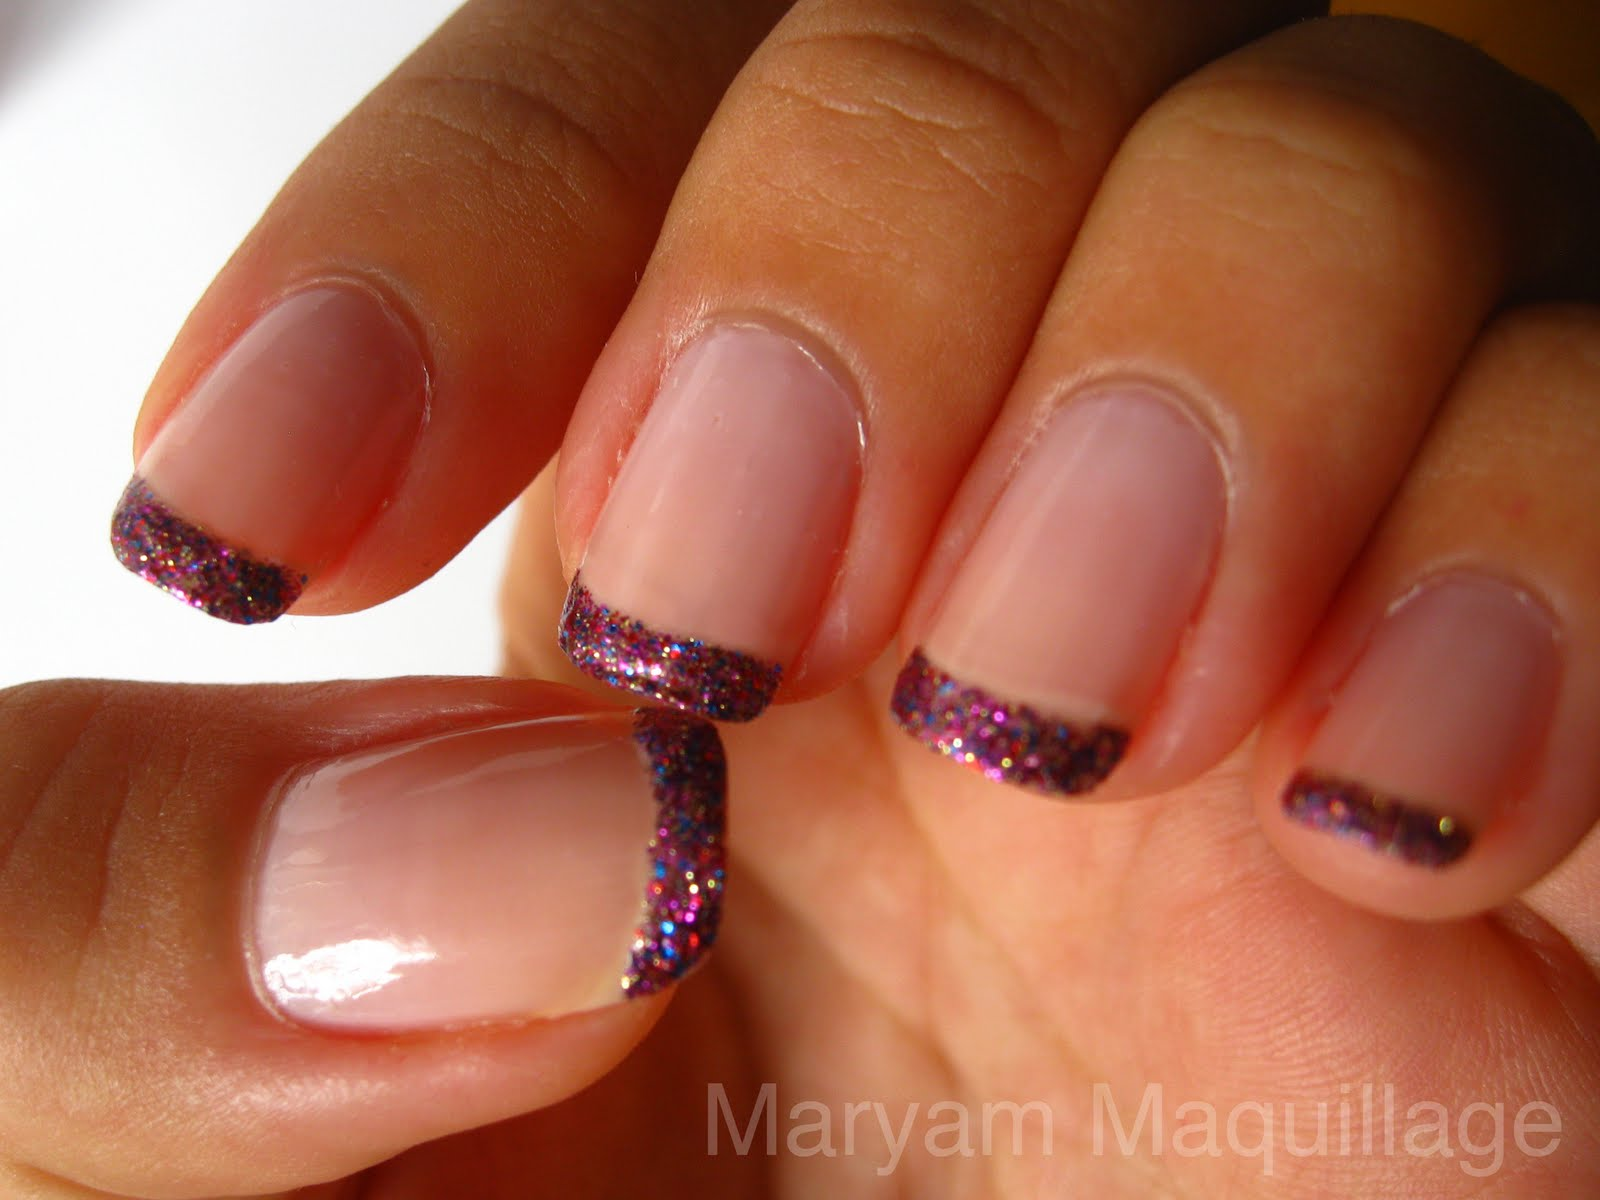 Maryam Maquillage: Rockstar Pink Nail Tips